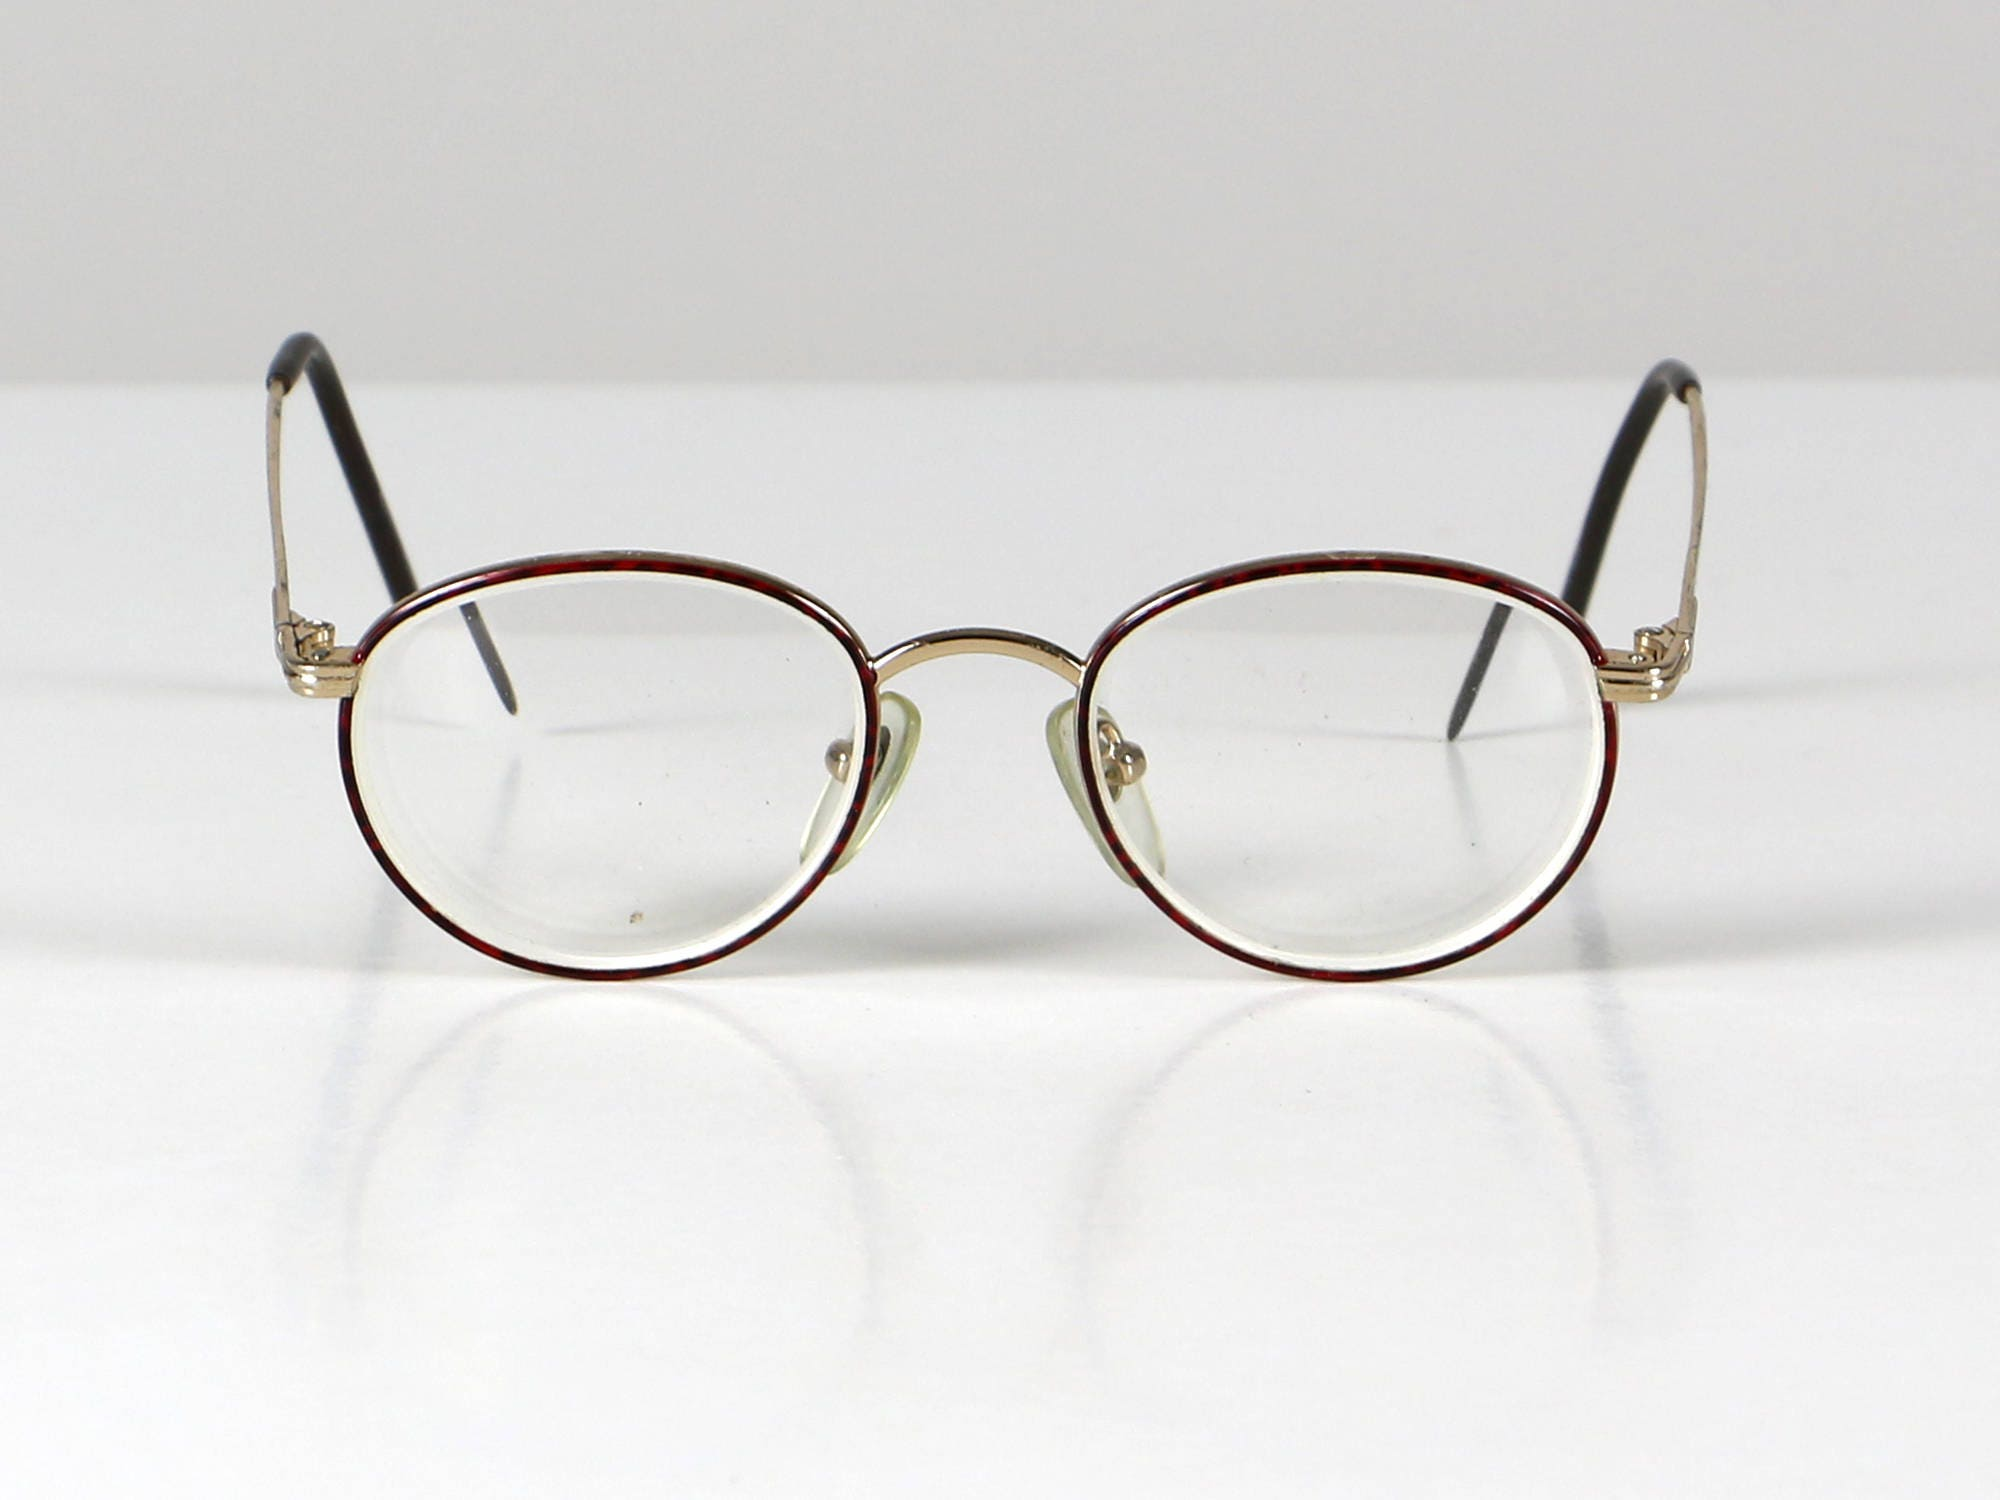 68a76f99f3 Red round glasses